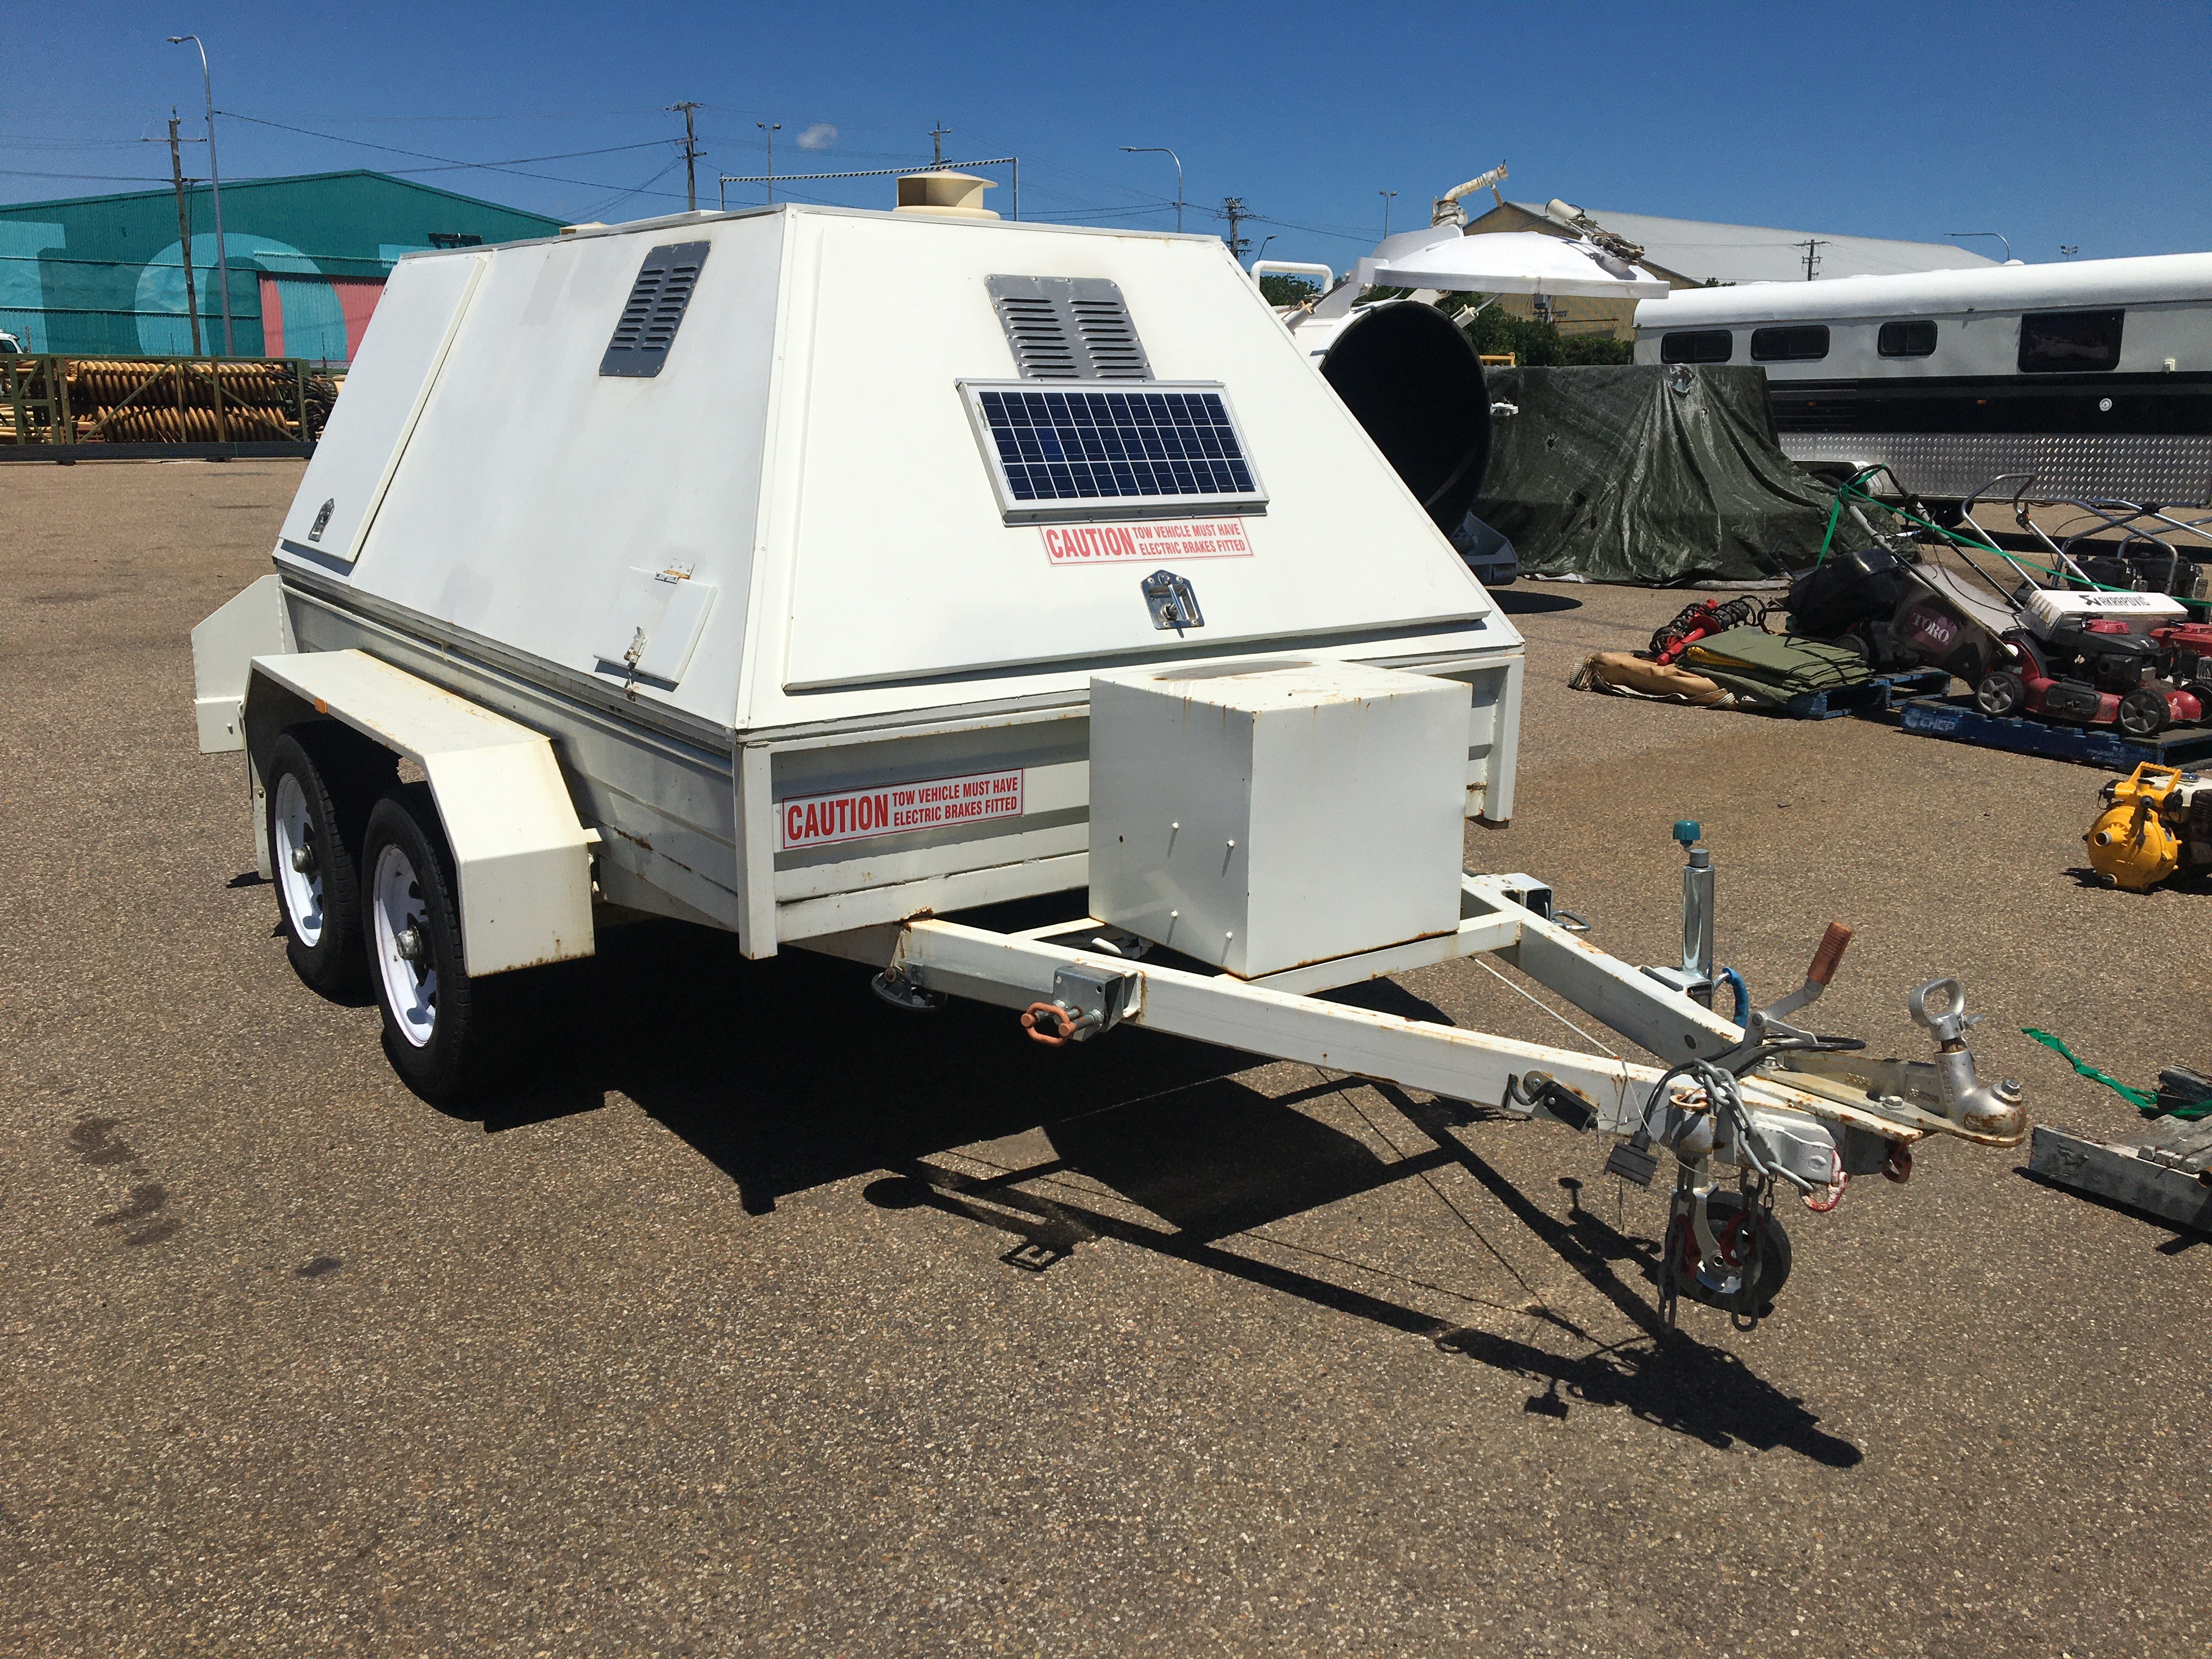 2011 Swiftco Tandem Water Trailer - Ex Council